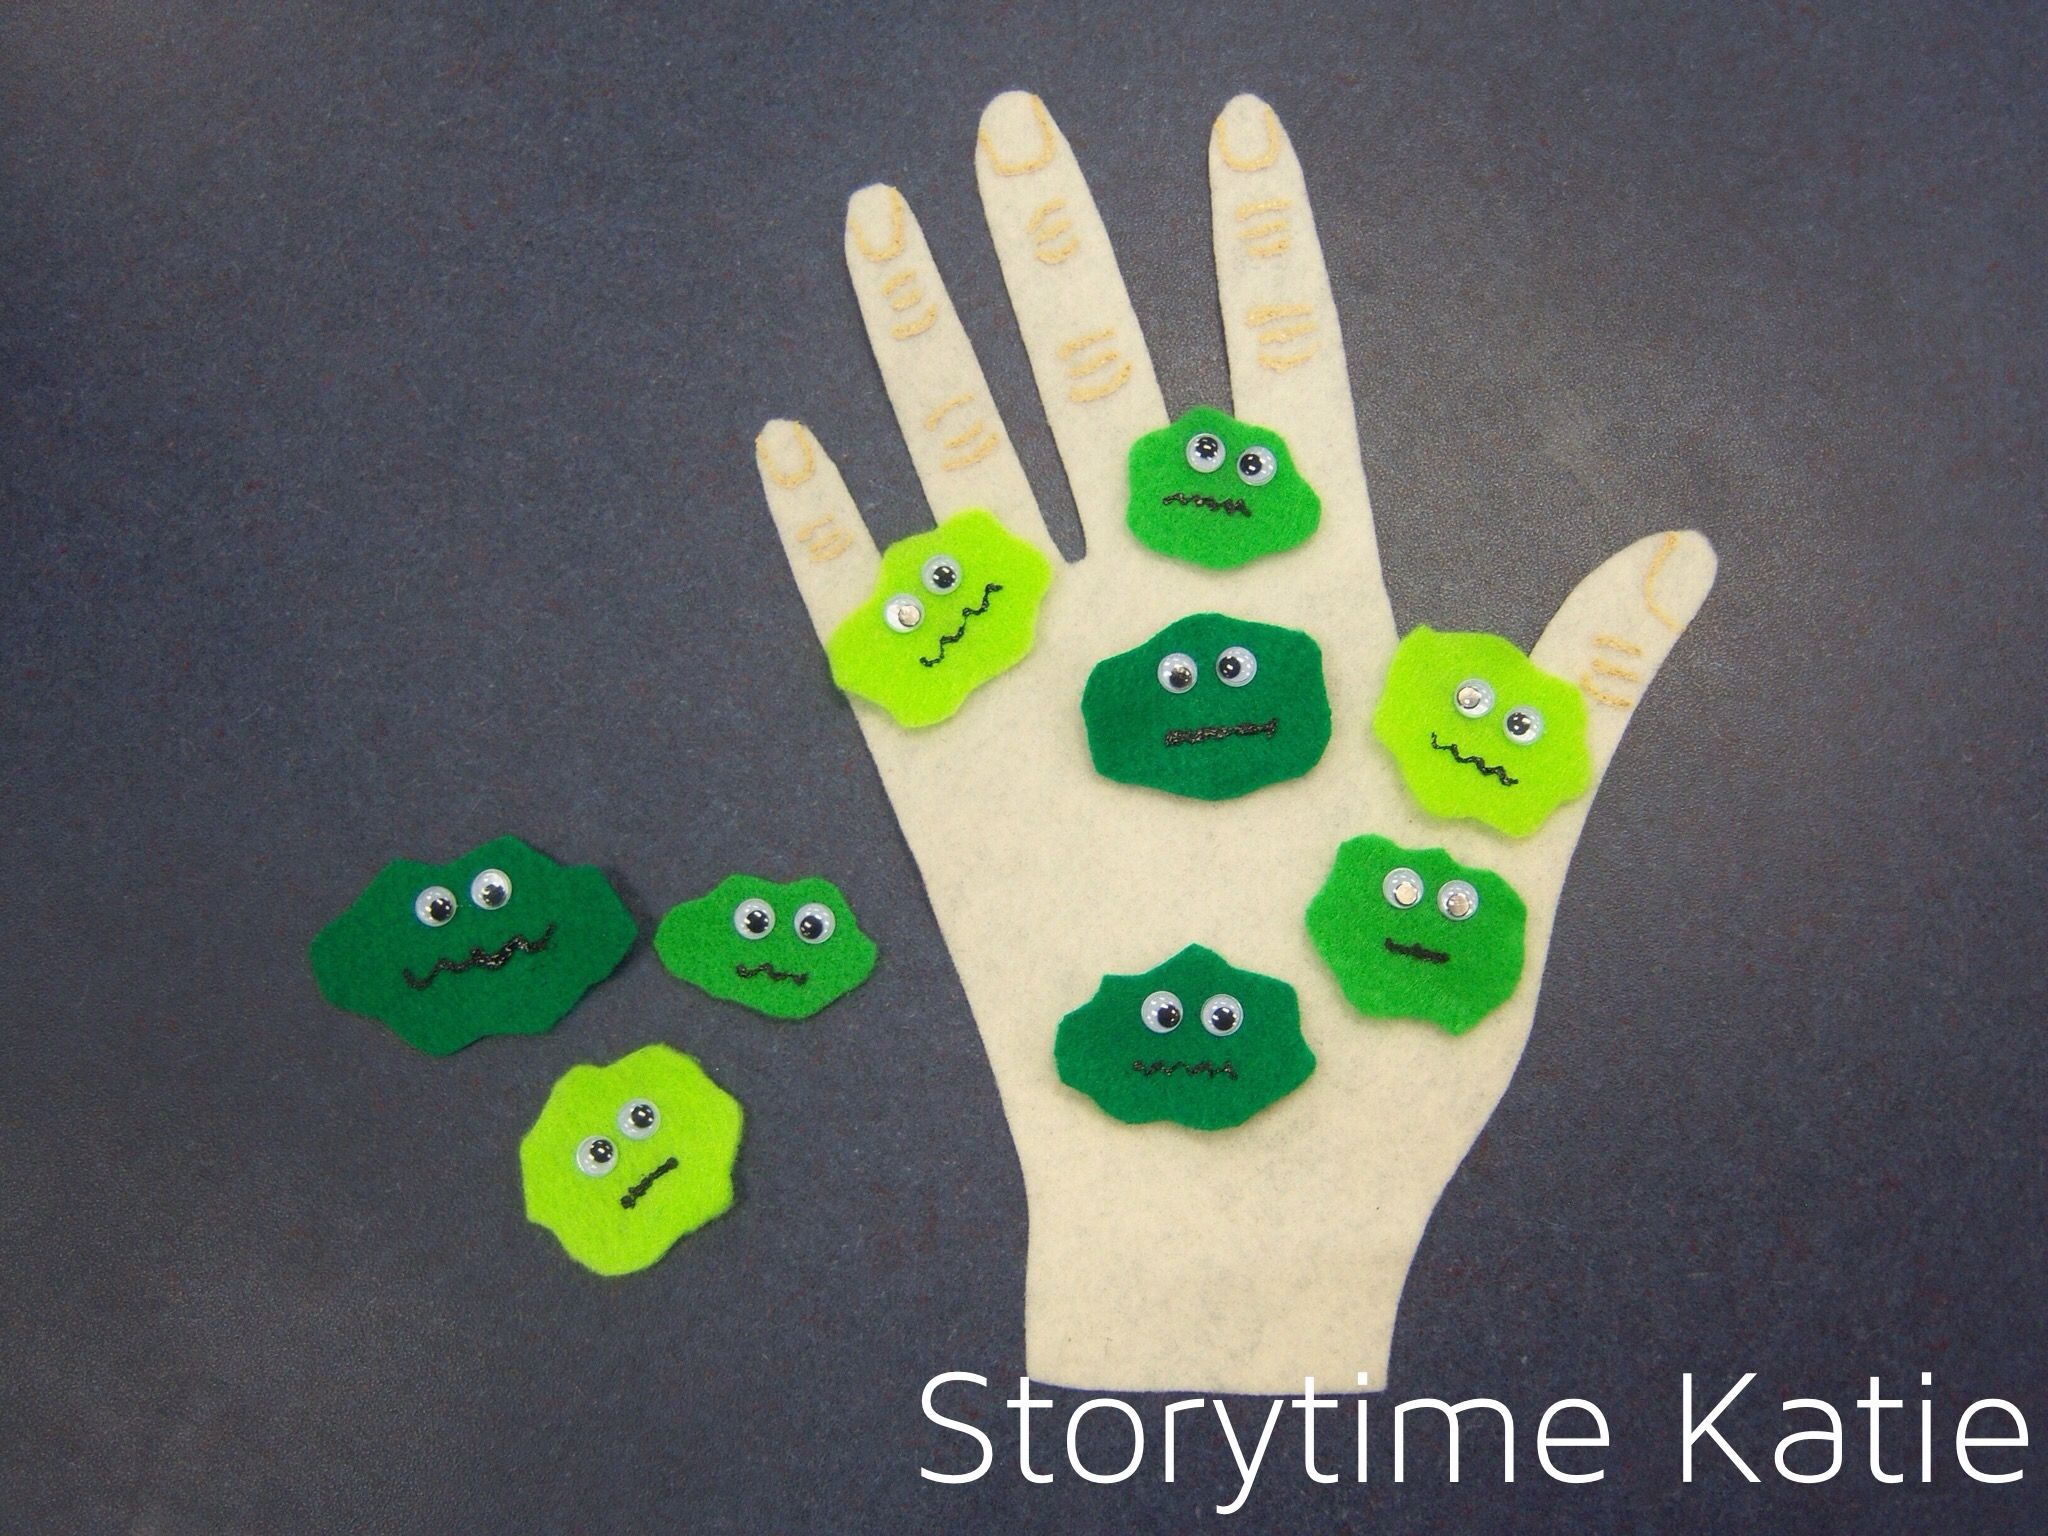 All The Little Germs By Storytime Katie Quick And Clever For A Hand Washing Reminder At